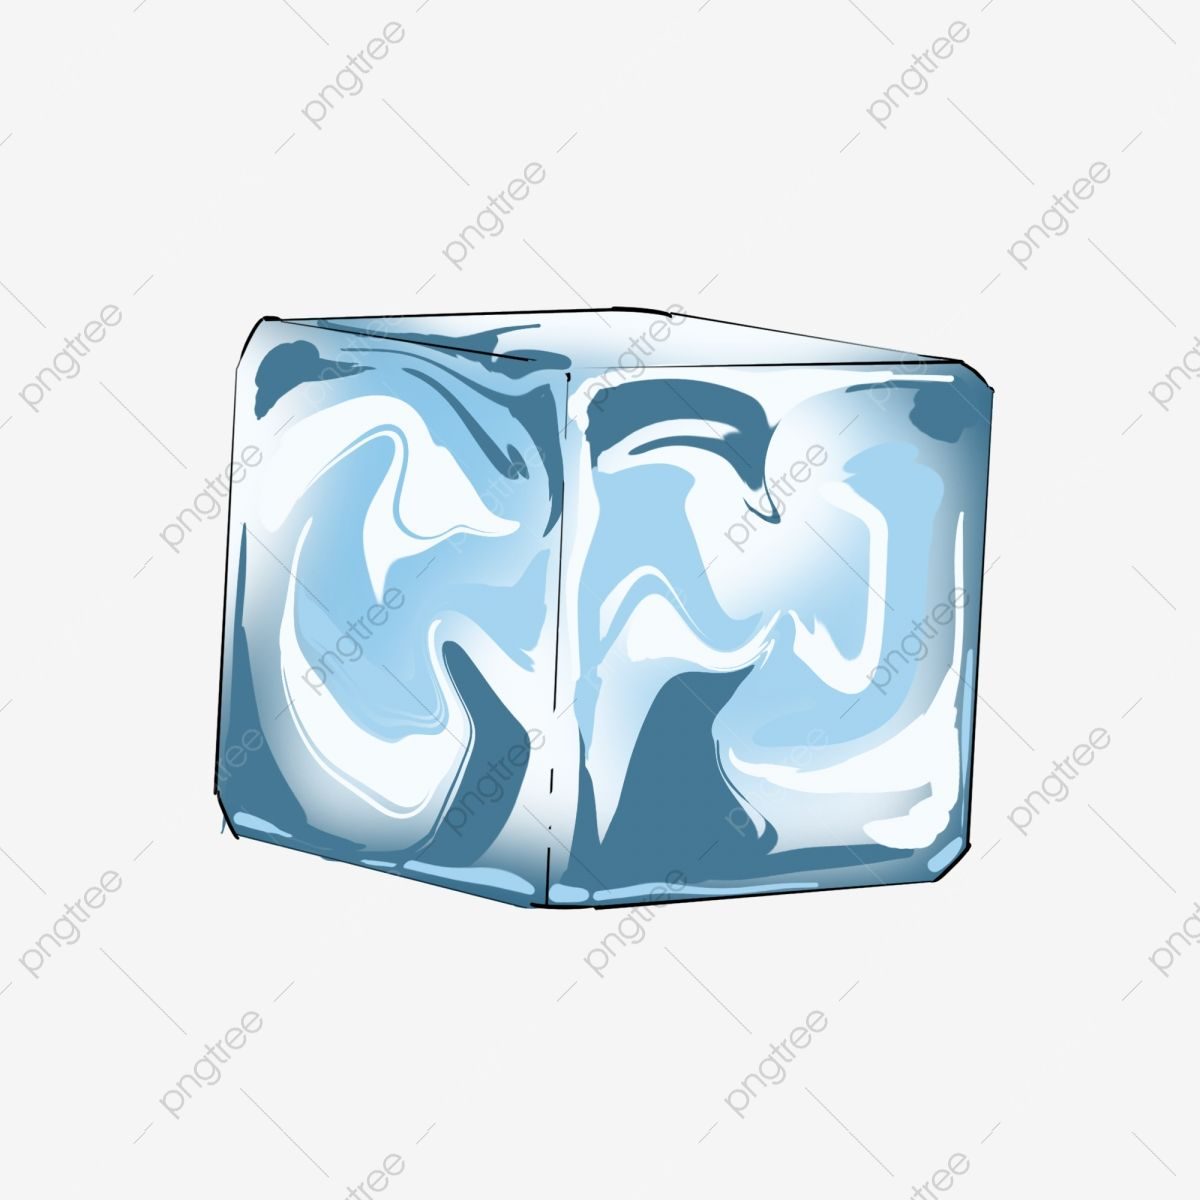 Blue Ice Cubes Melting Ice Cubes Blue Ice Cubes Fast Melting Ice Cubes Household Ice Cubes Png Transparent Clipart Image And Psd File For Free Download Ice Cube Melting Ice Blue